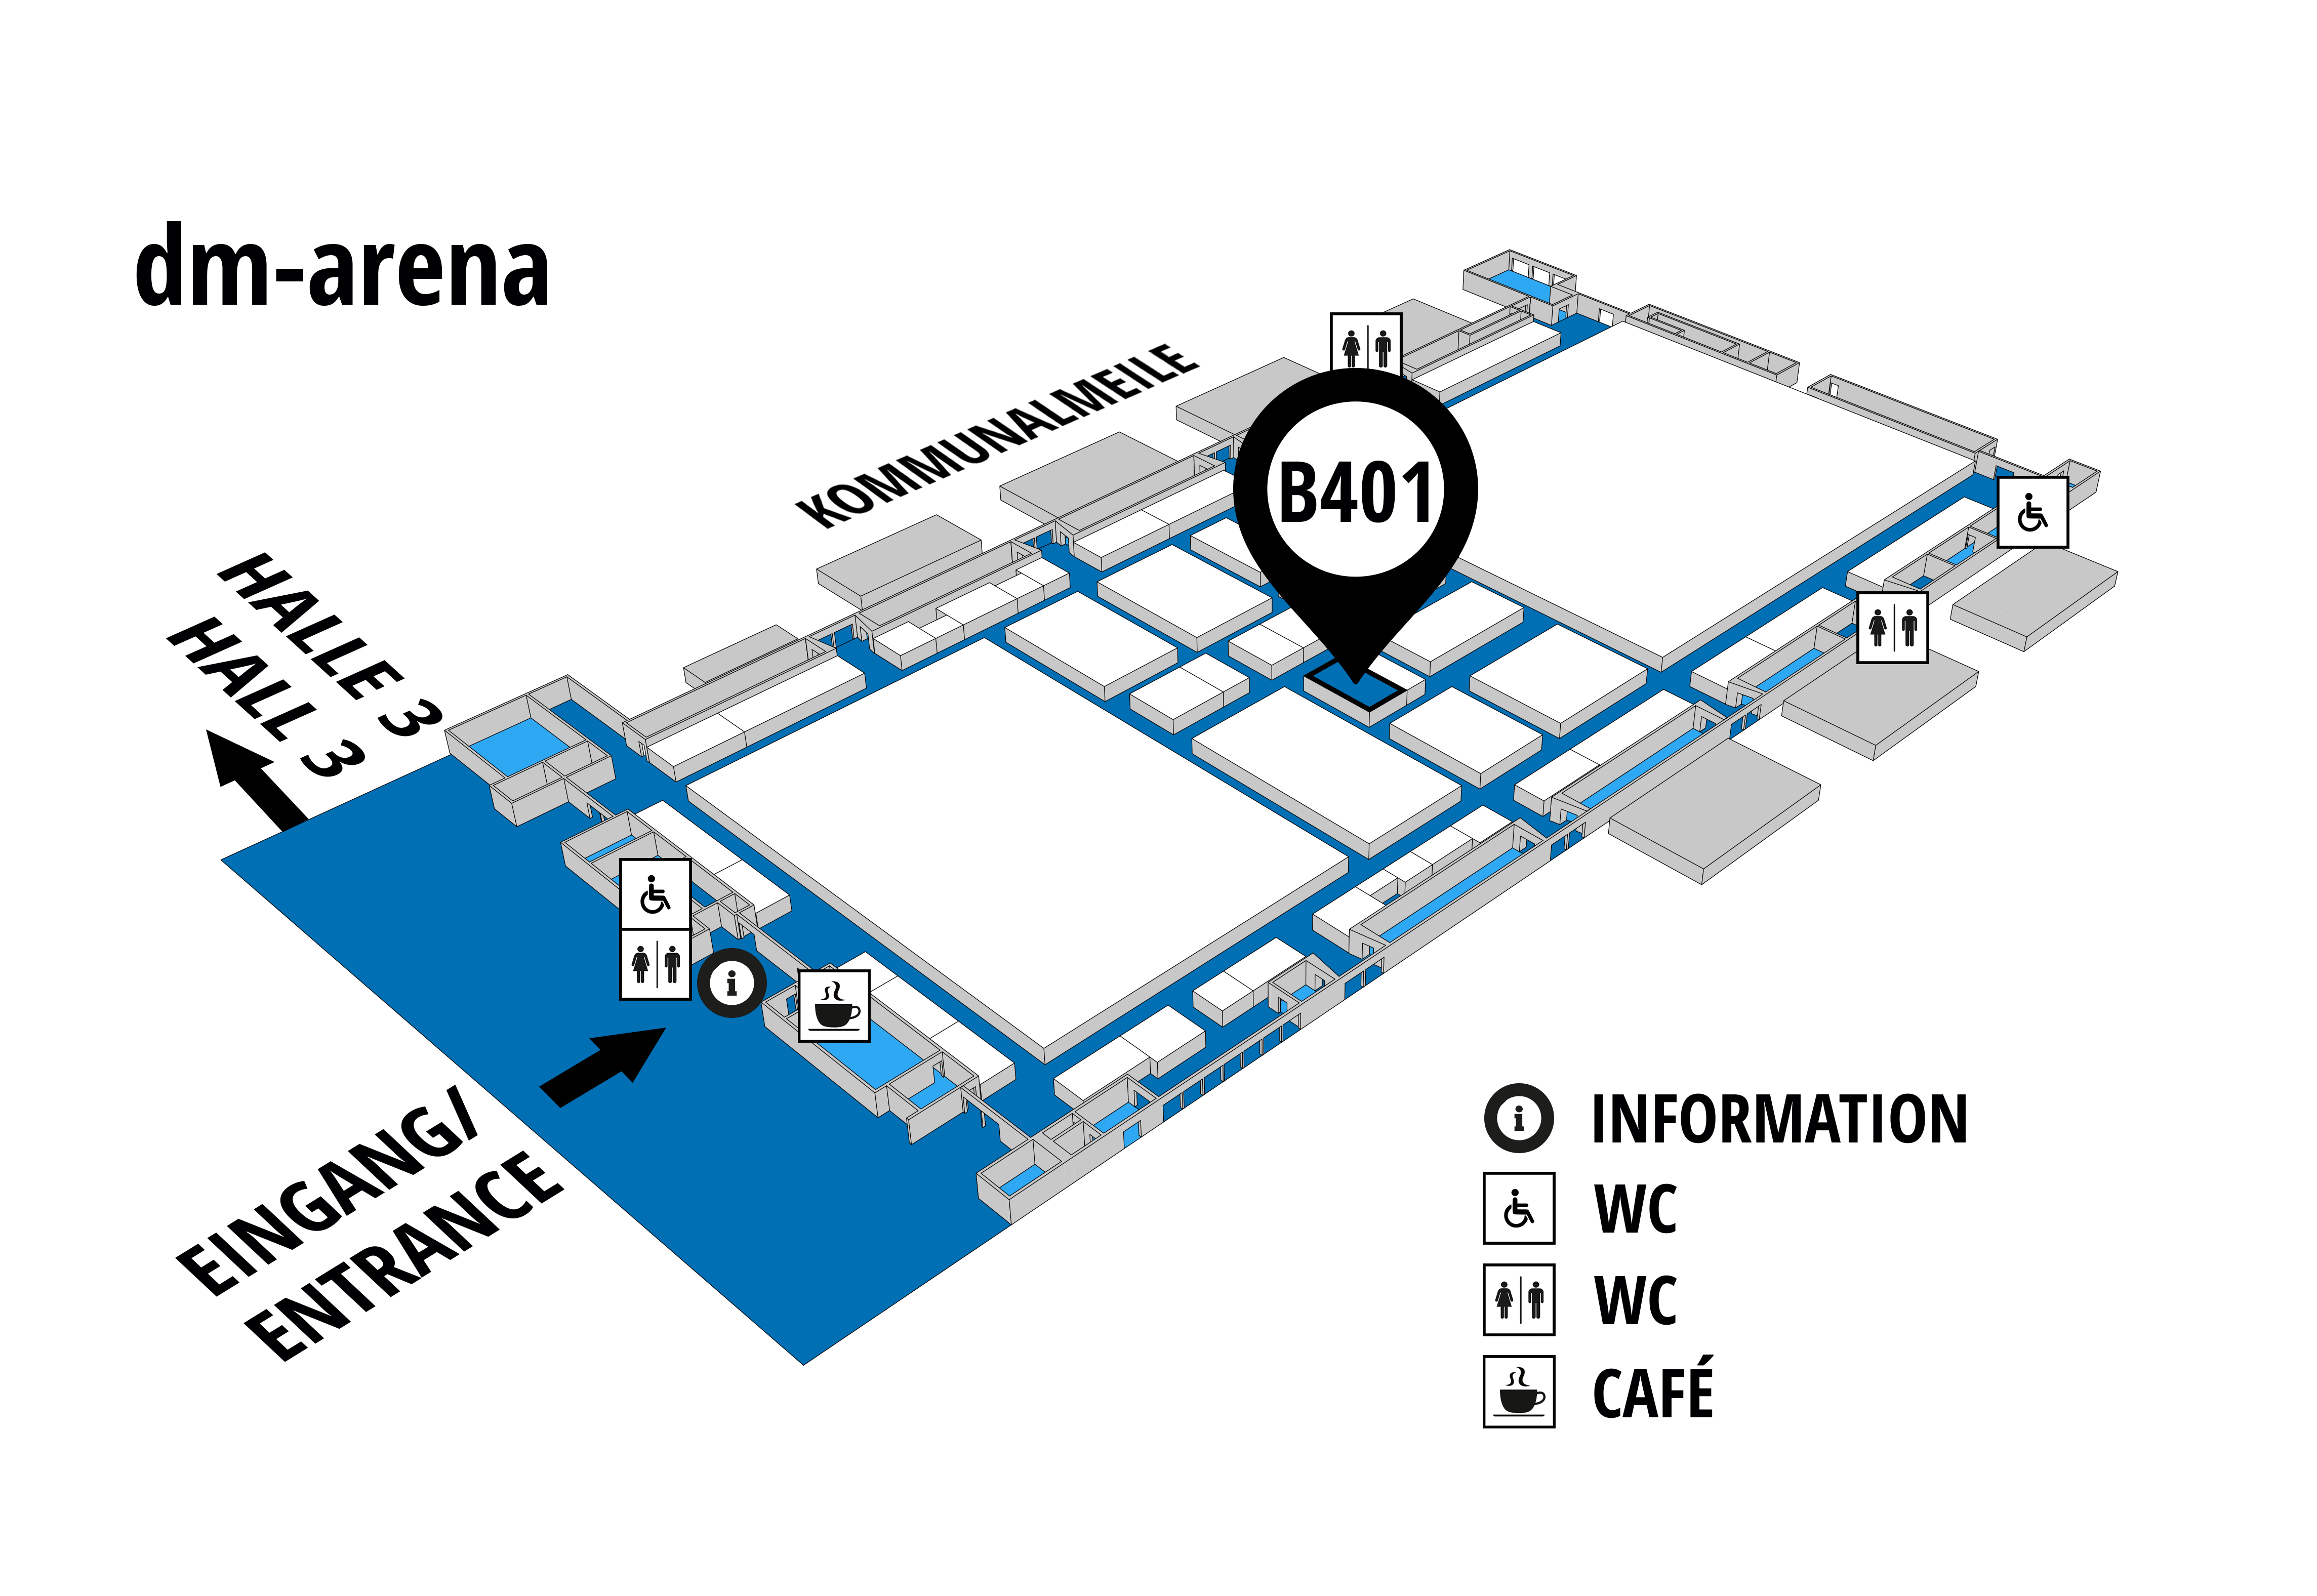 NUFAM 2019 - Trade fair for commercial vehicles hall map (dm-arena): stand B 401